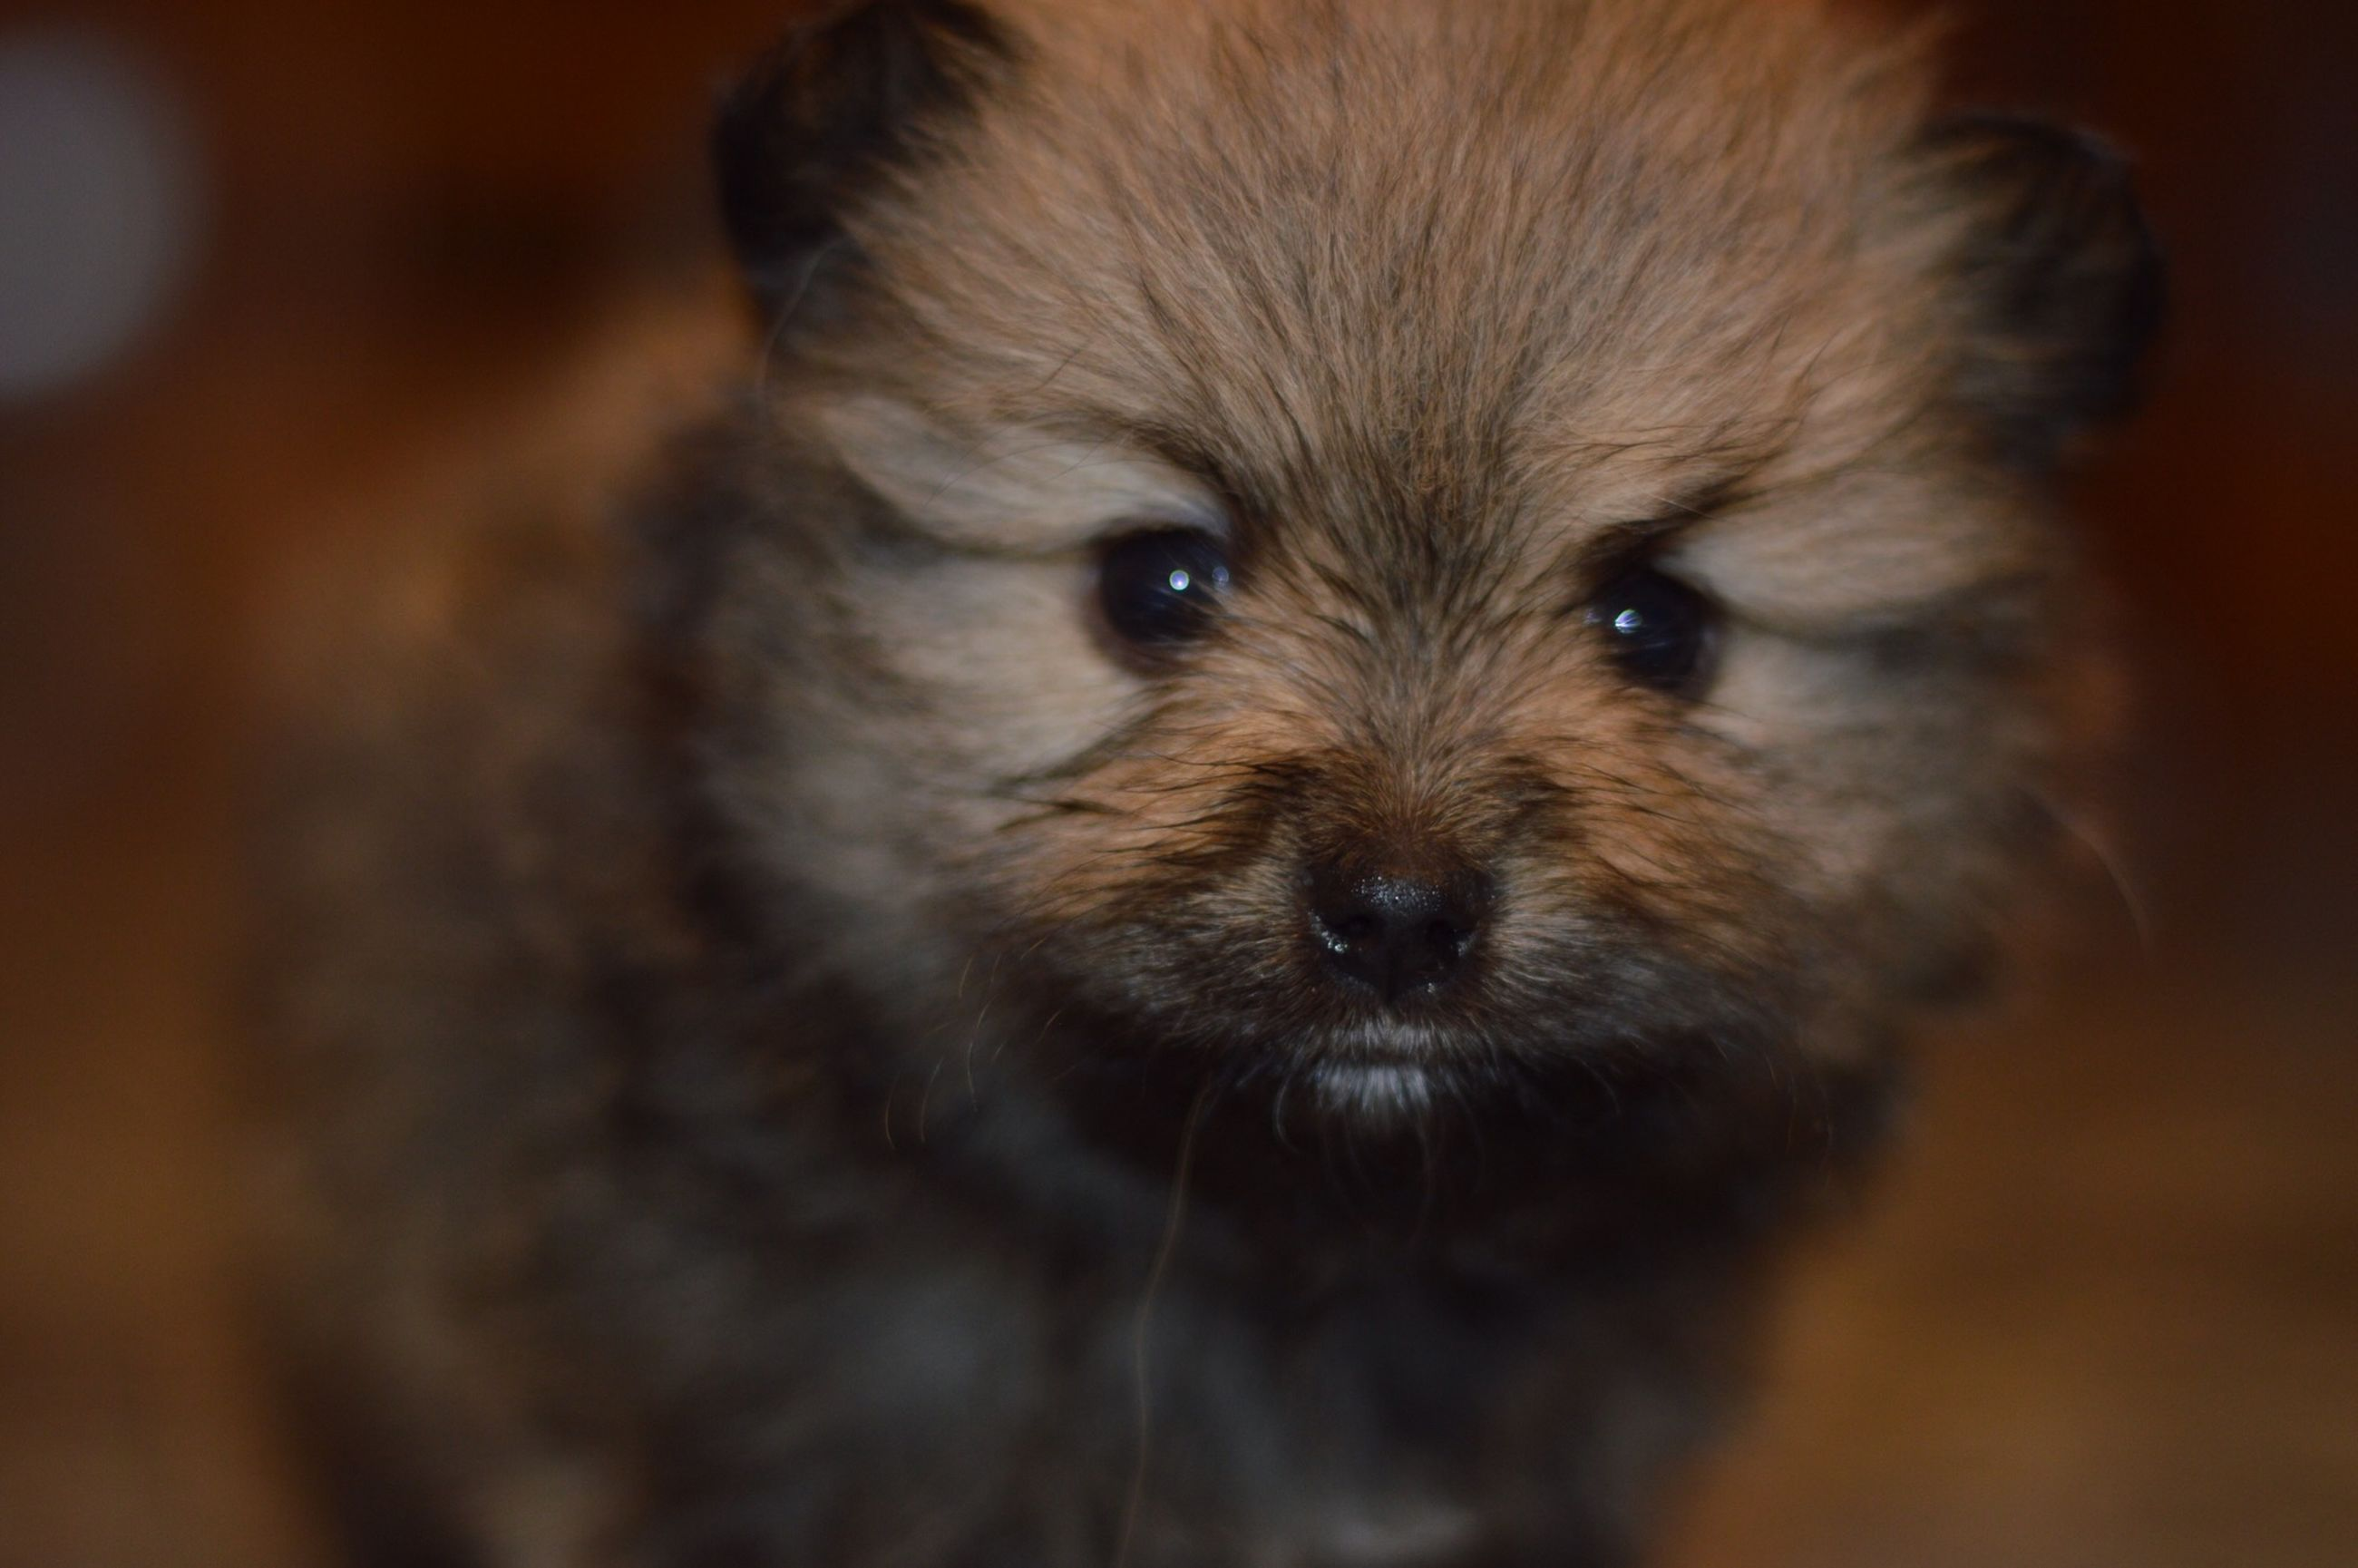 animal themes, one animal, mammal, pets, domestic animals, dog, portrait, close-up, looking at camera, animal head, selective focus, focus on foreground, animal hair, zoology, indoors, front view, young animal, animal body part, no people